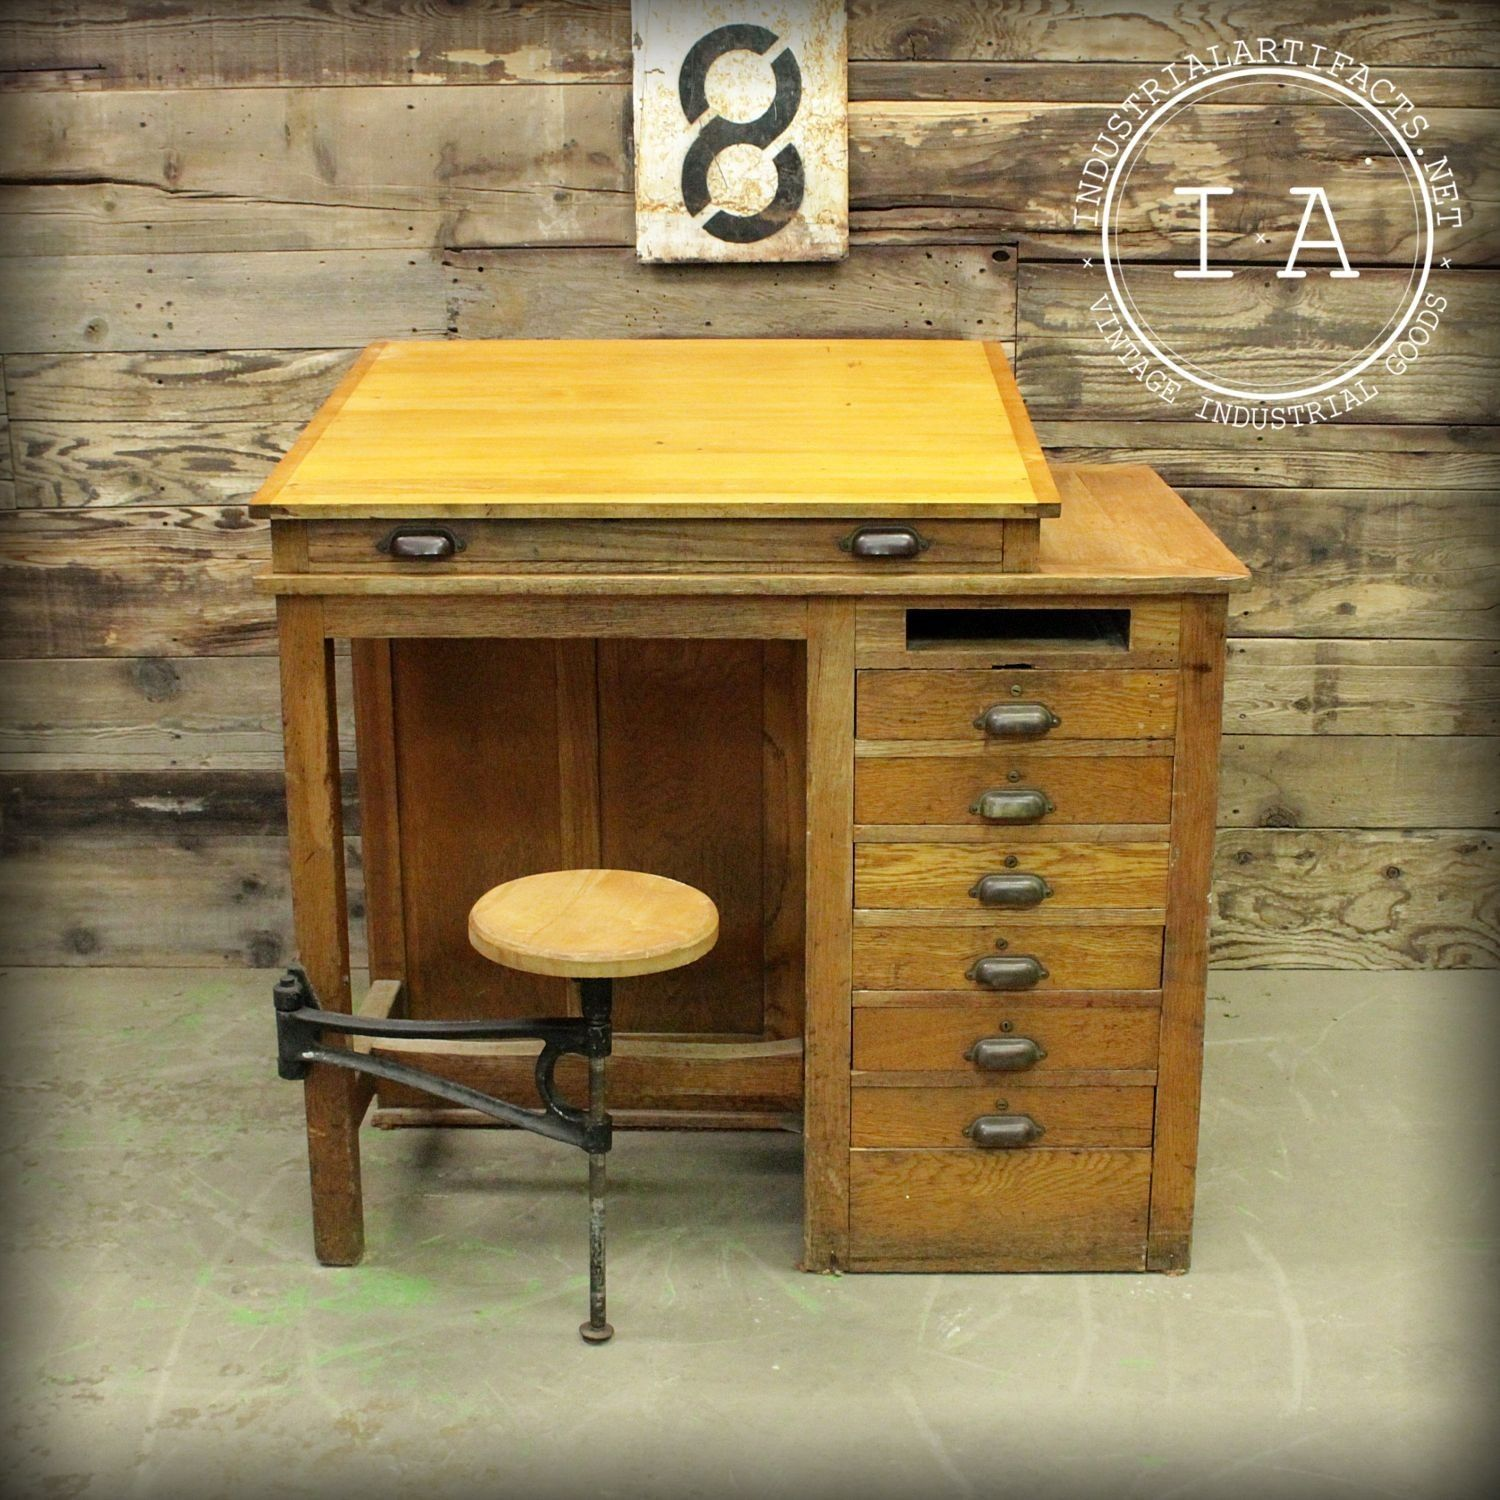 7 Drawer Wooden Drafting Table With Swing Out Stool Asking: $2,550 Or Make  Offer.